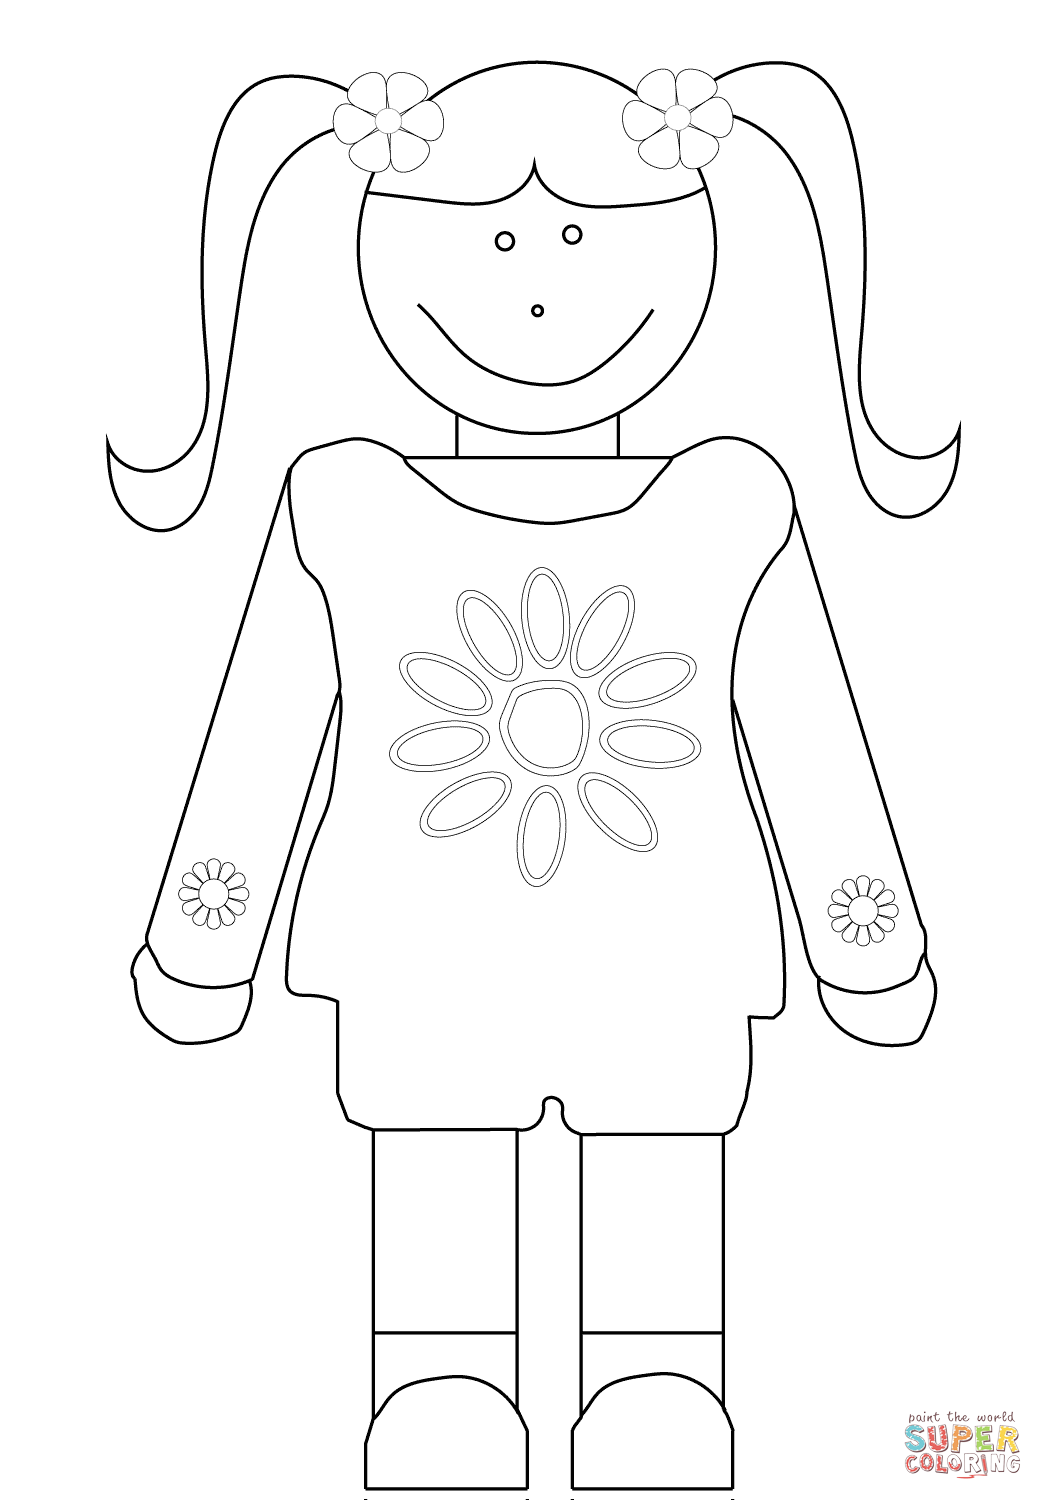 girl scout coloring pages for daisies 94 best coloring sheets images on pinterest preschool girl coloring for pages daisies scout